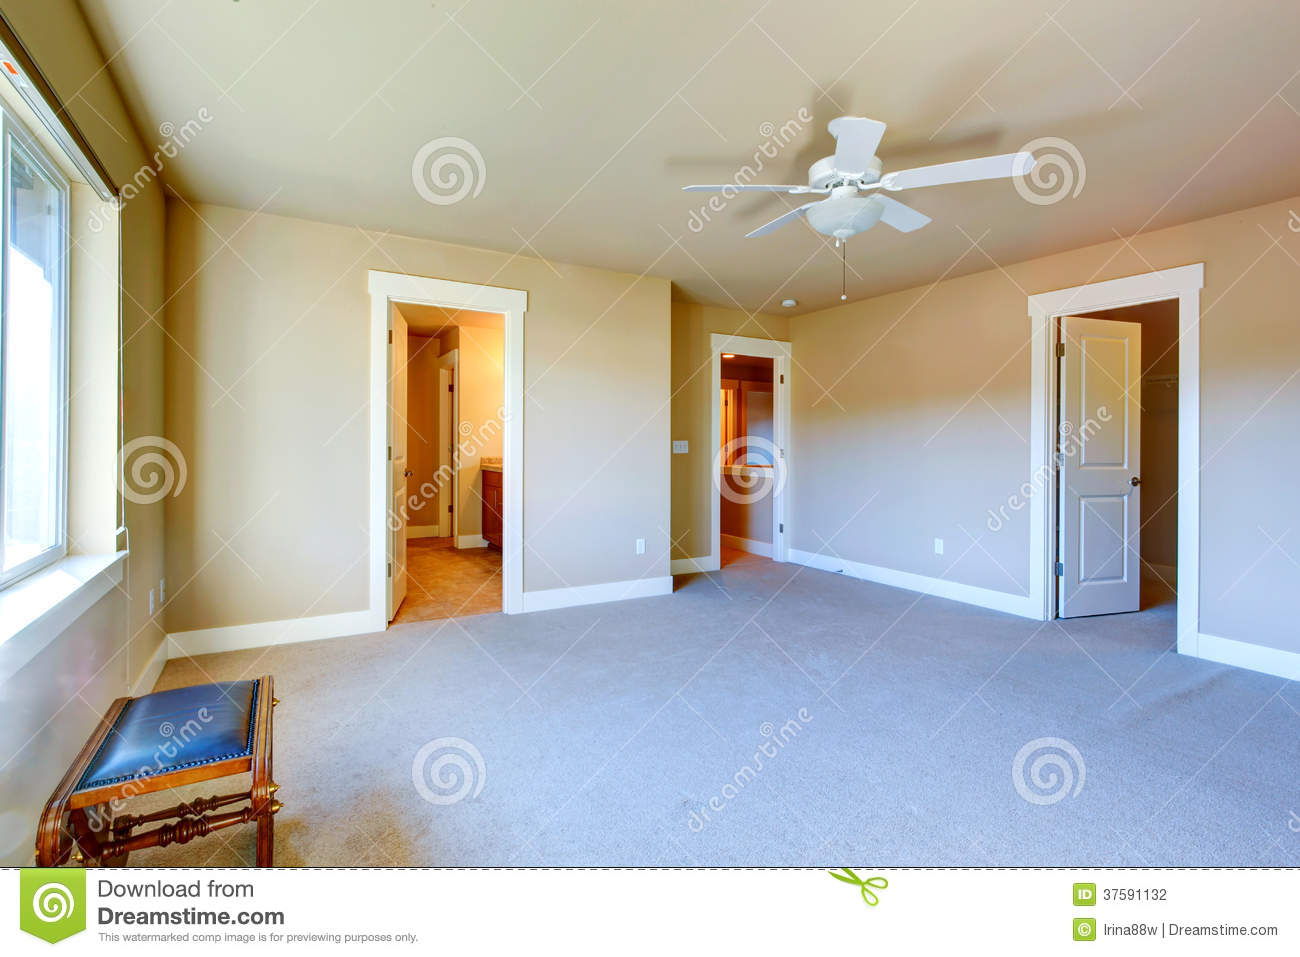 Empty Master Bedroom With Walk in Closet And Bathroom